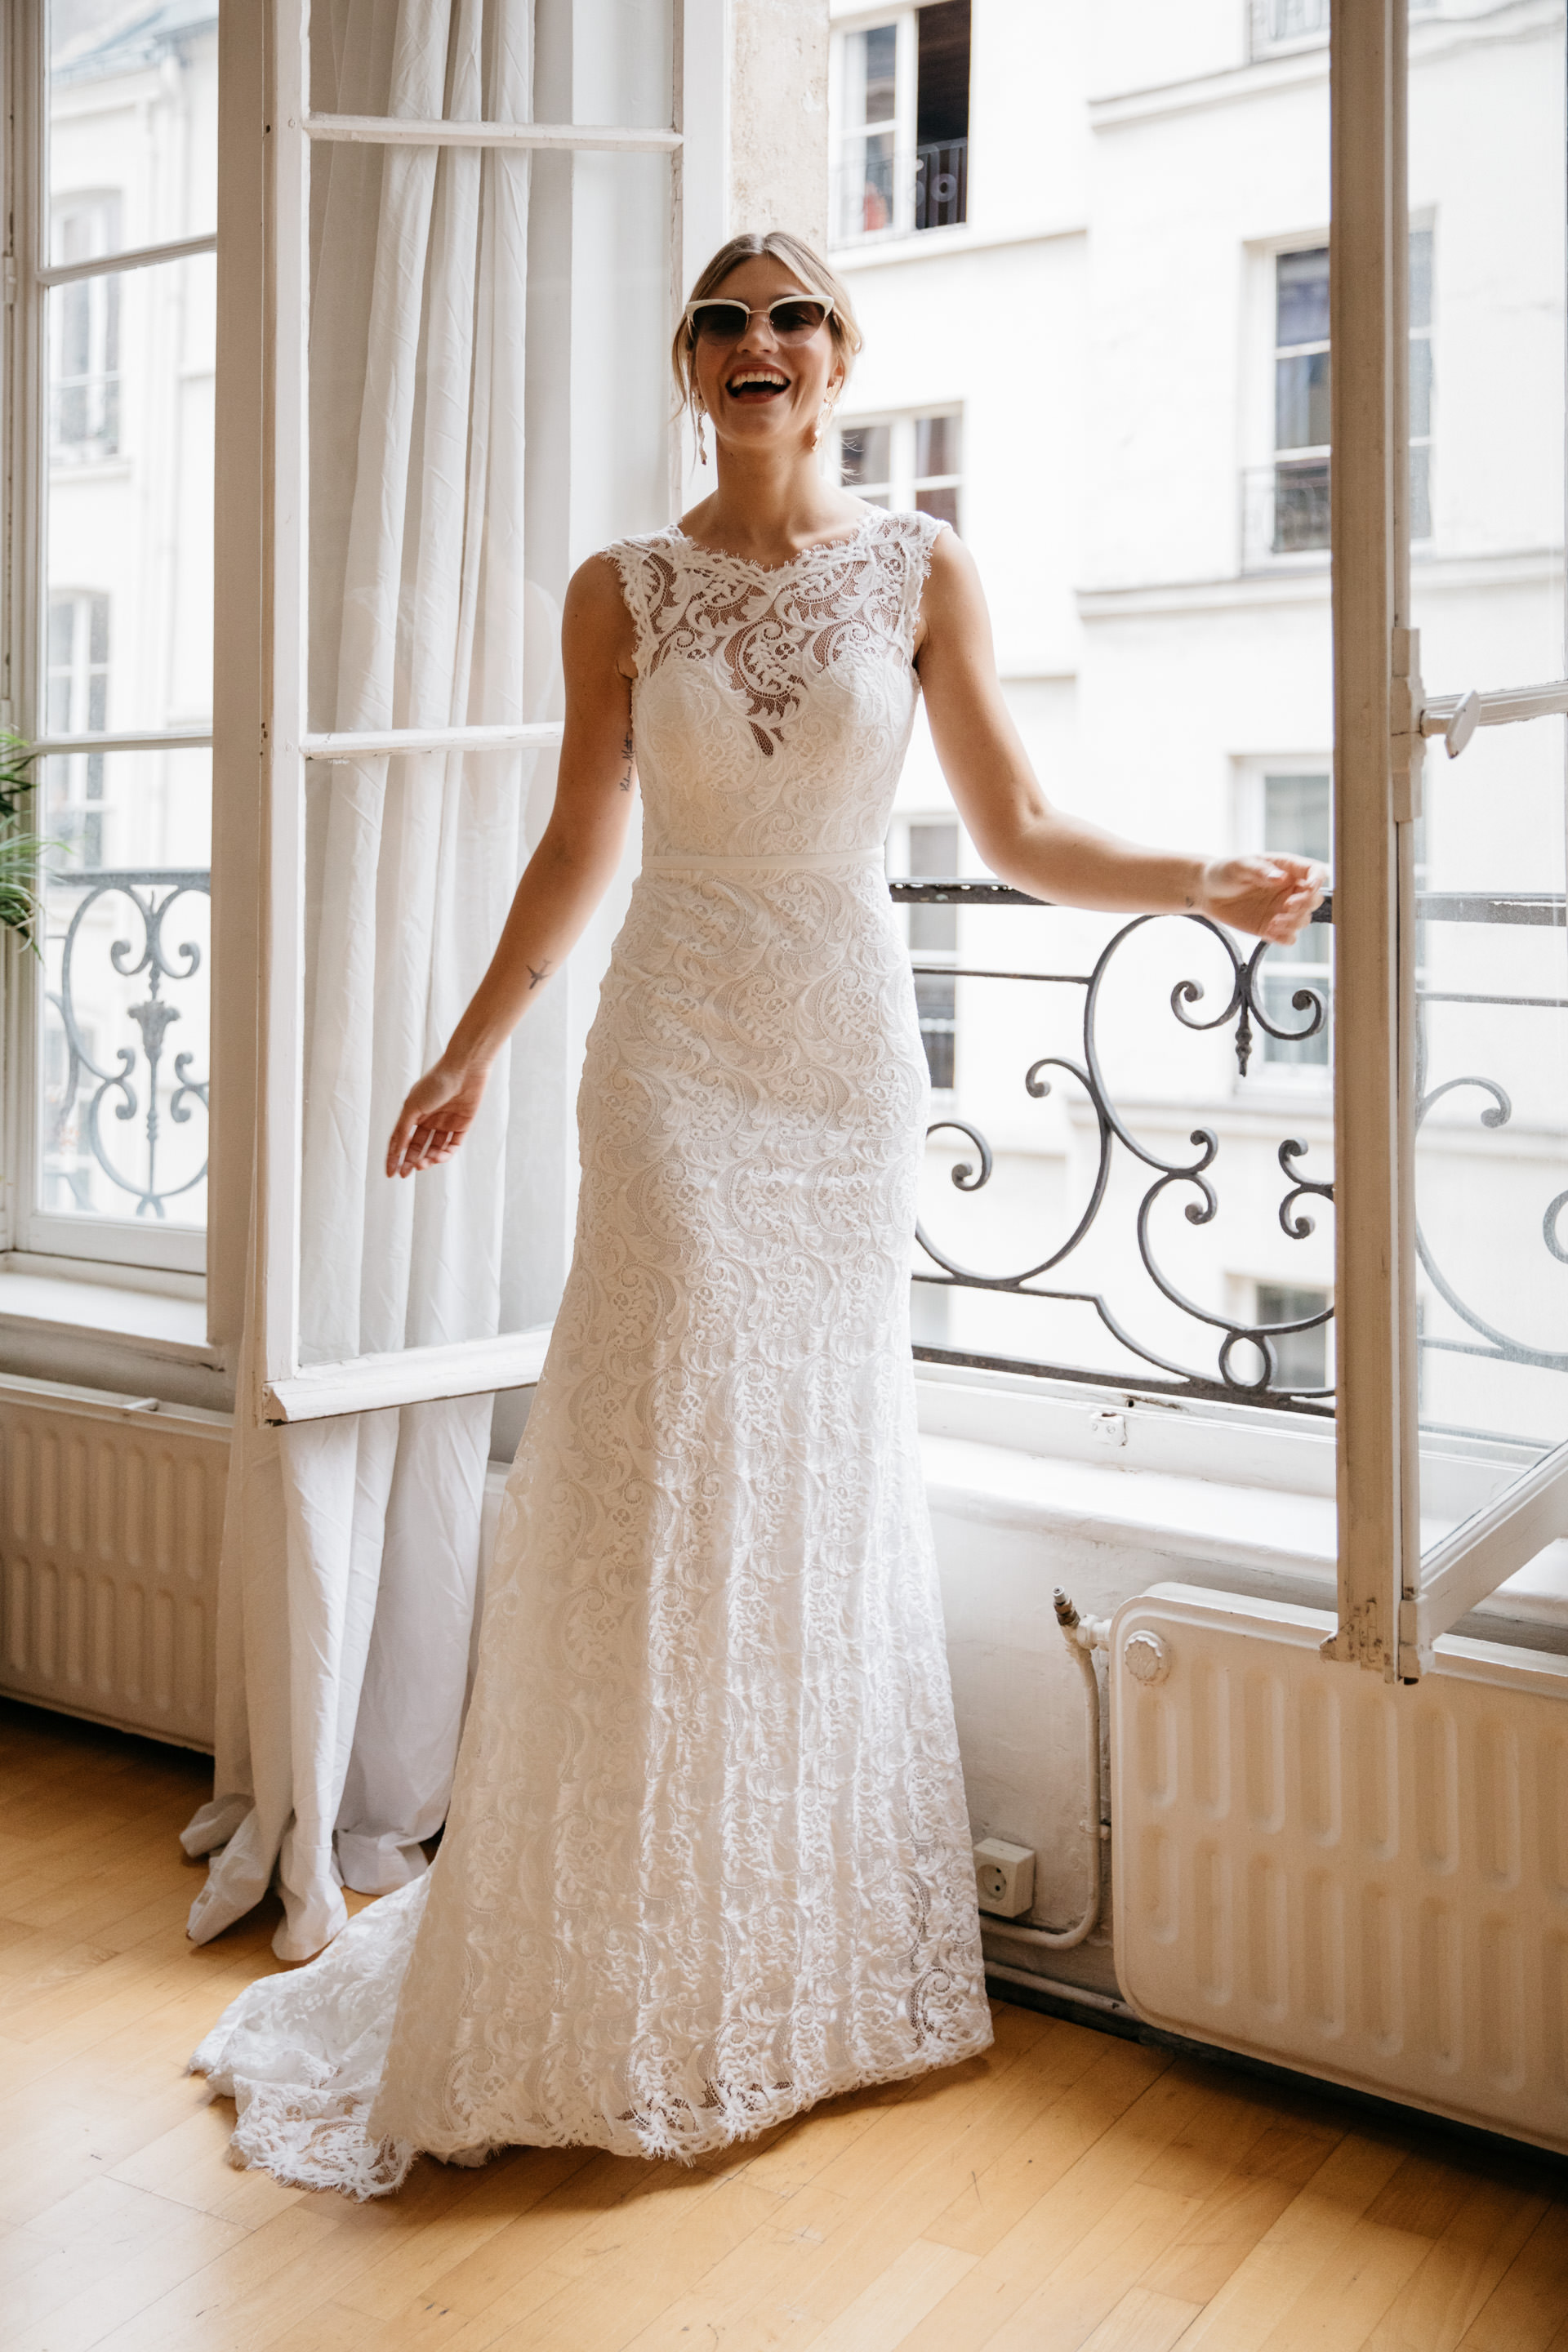 Daisy Brides Bridal Designer available to brides in Melbourne at Bluebell Bridal